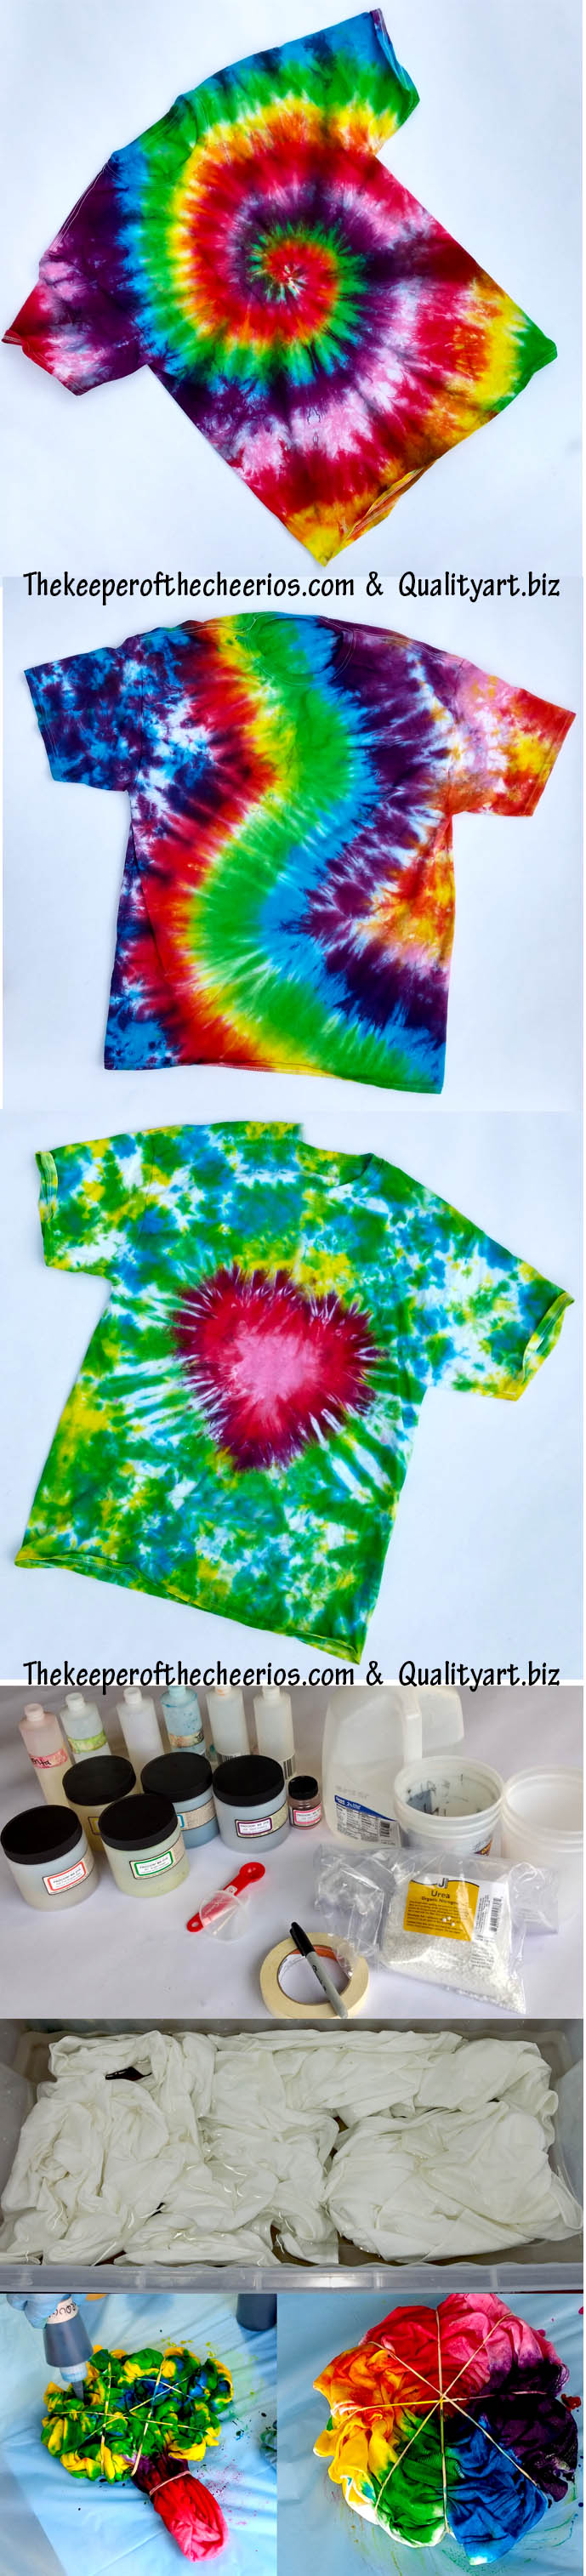 jacquard tie dye instructions